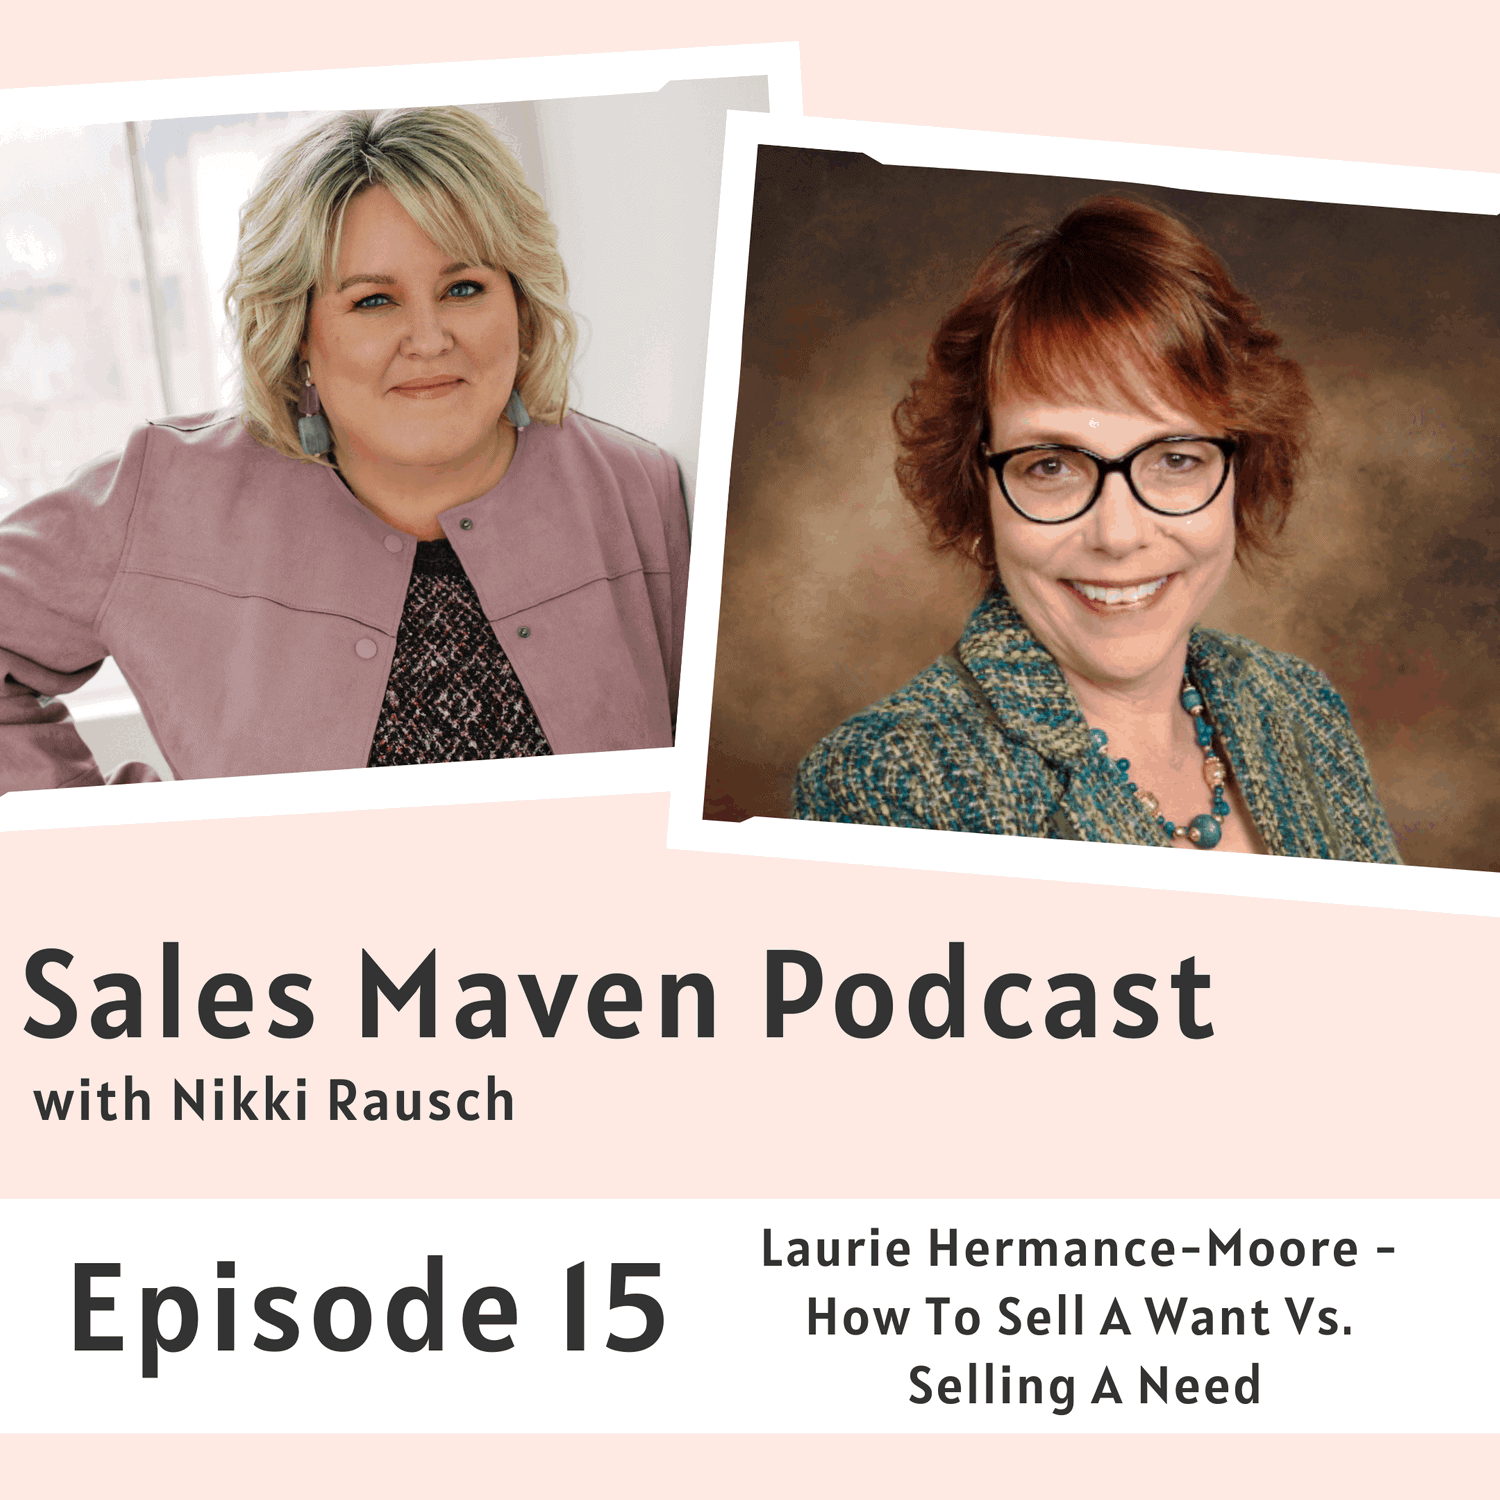 How to sell a want vs selling a need with Laurie Hermance